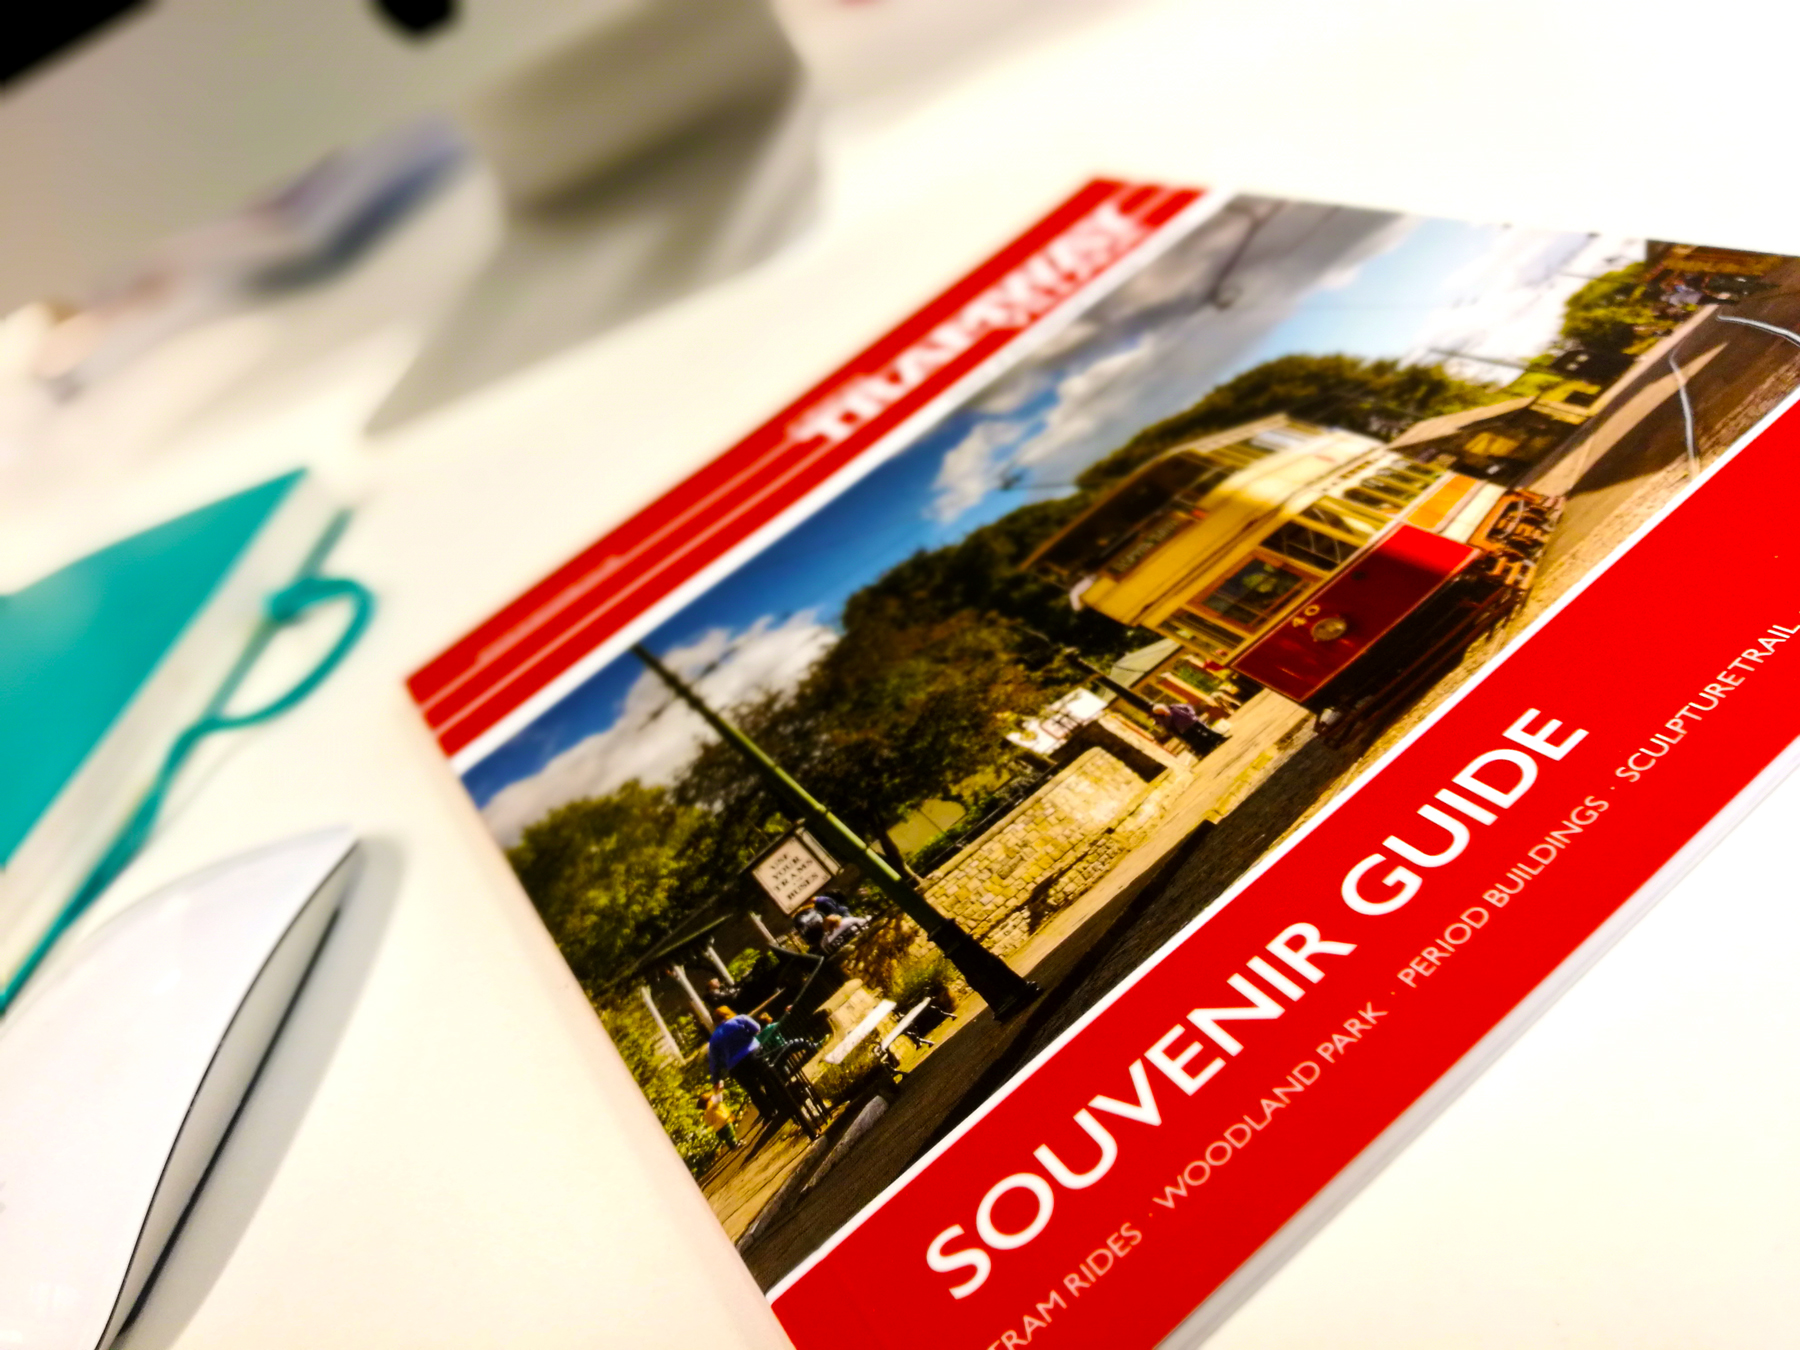 Crich Tramway Souviner Guide